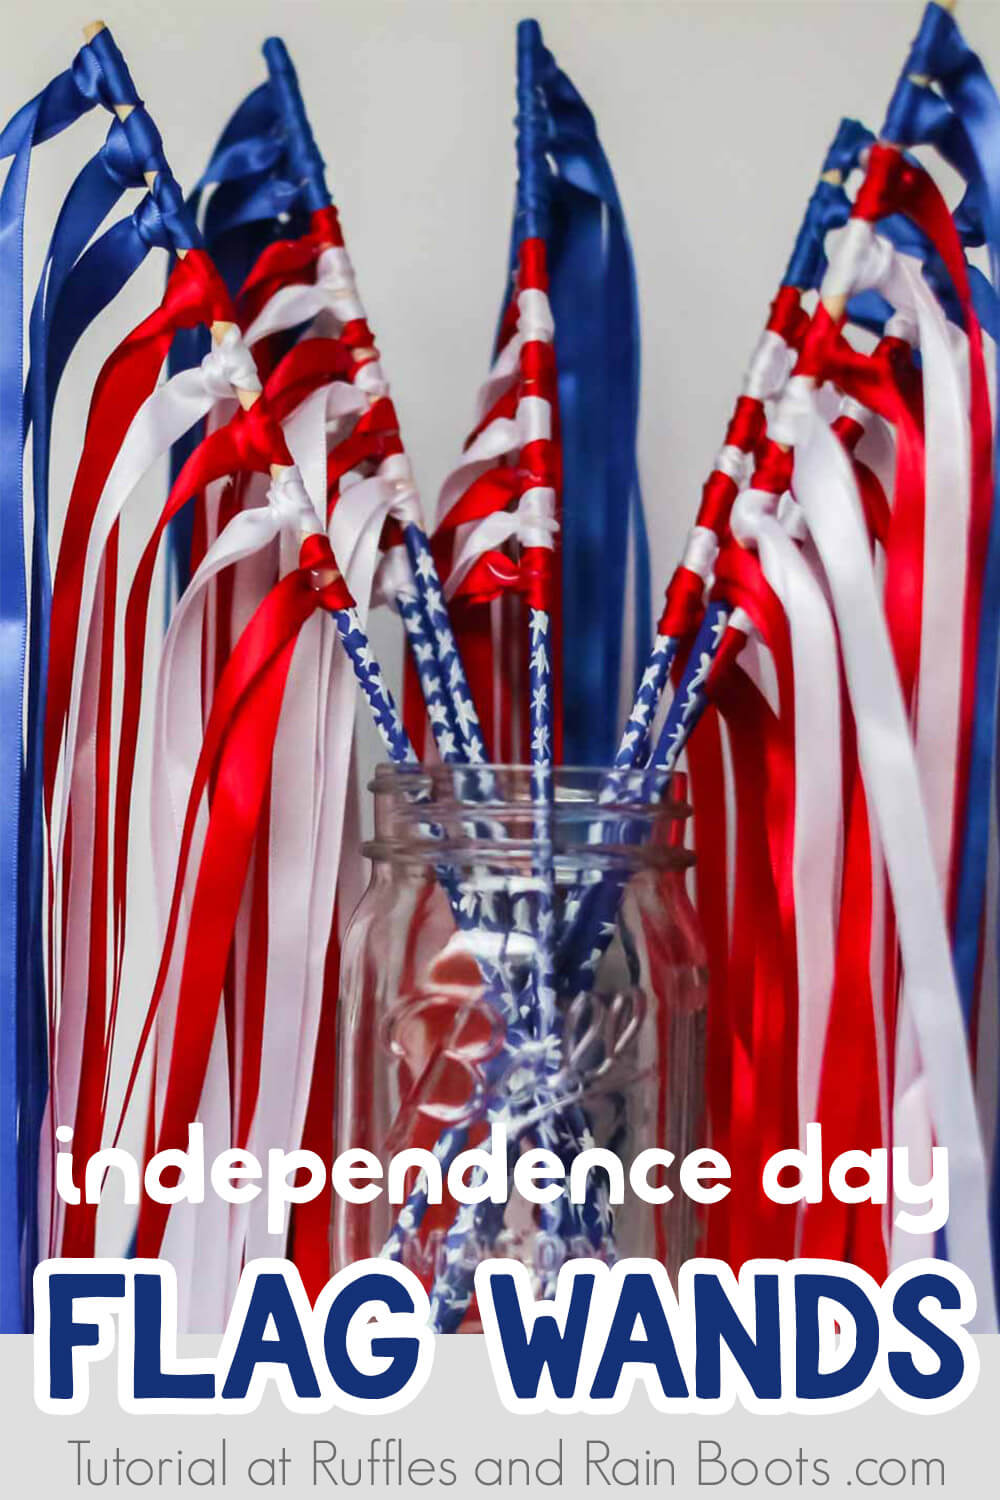 independence day flag wands with ribbon in a mason jar on a white background with text which reads independence day flag wands